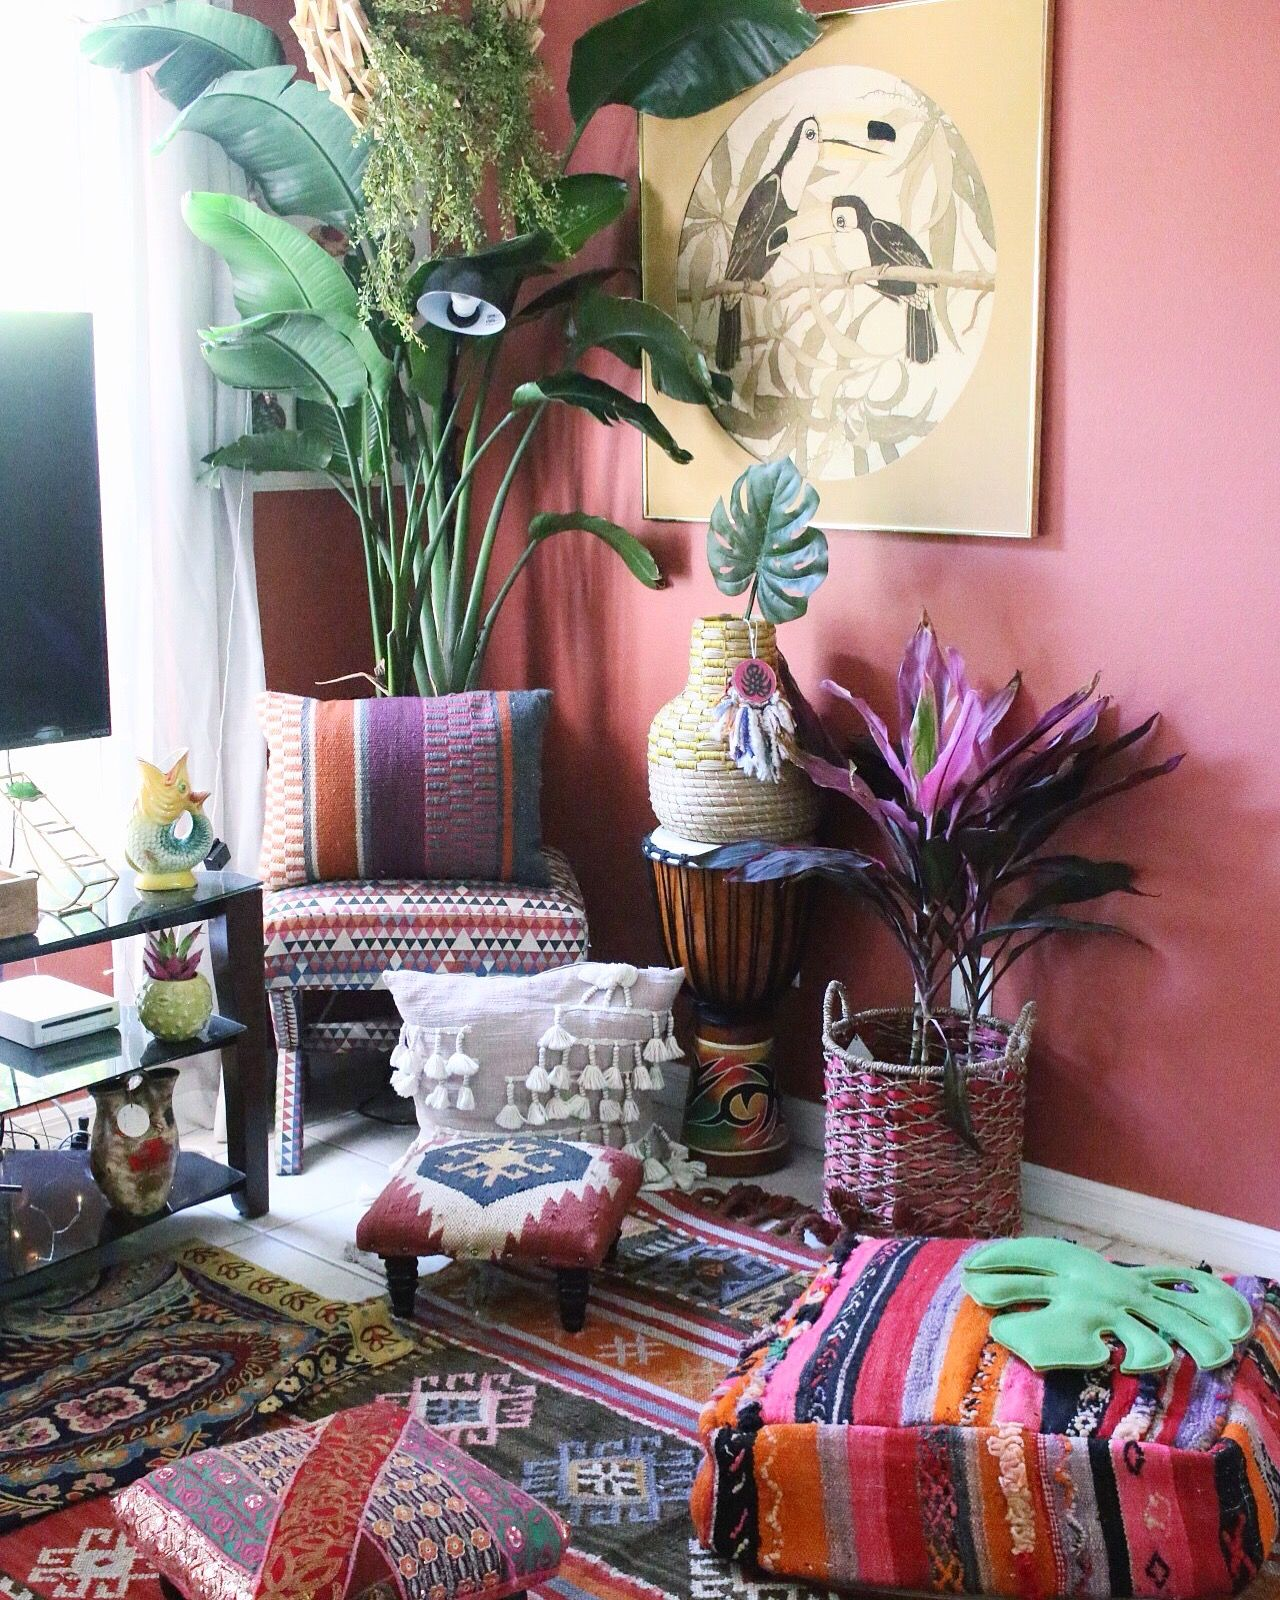 This Home May Be The Tropical Boho Bungalow Of Your Dreams Boho Bungalow Bohemian Style Decor Boho Living Room